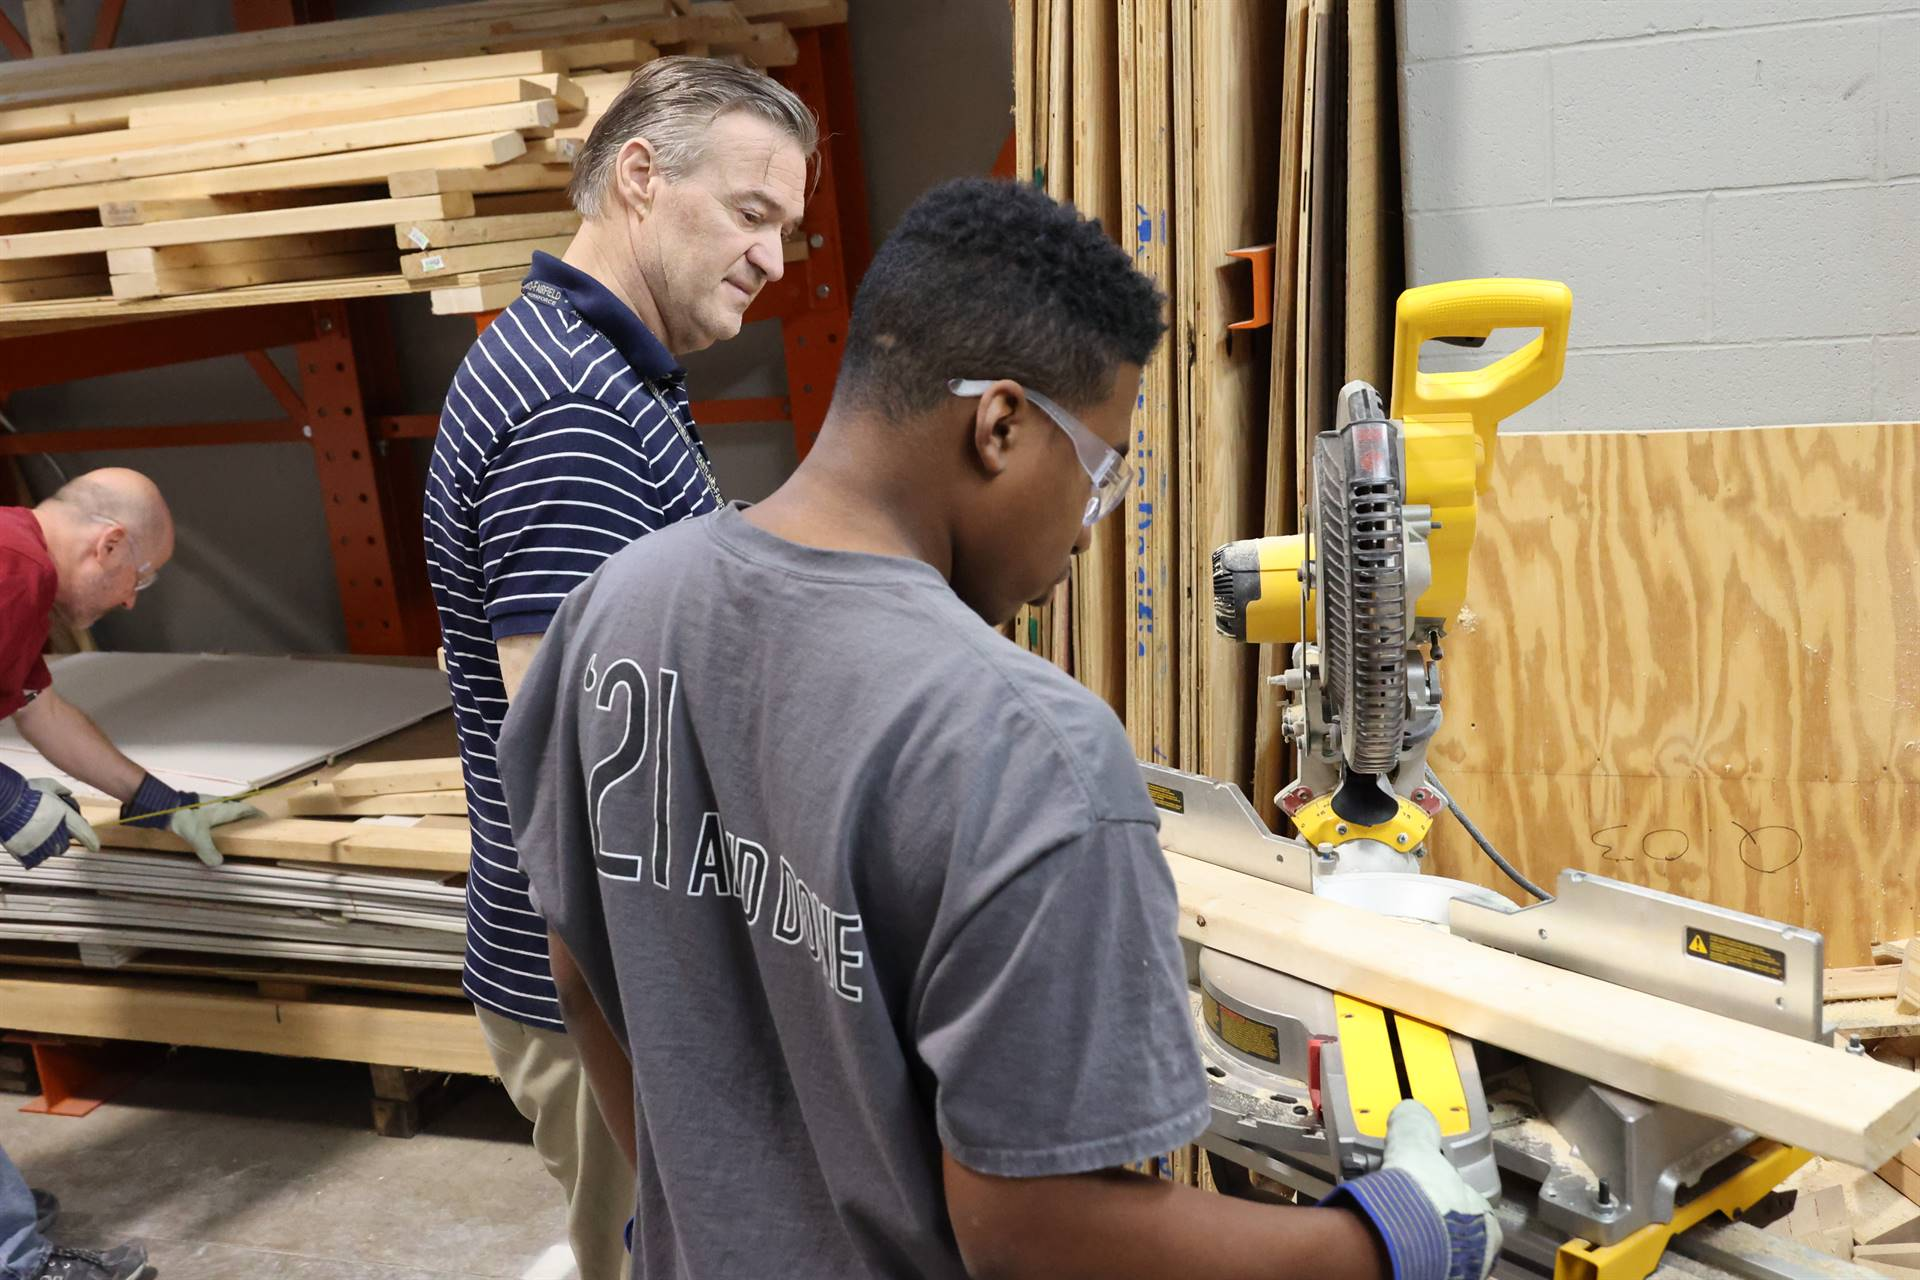 Instructor teaching students about about band saw